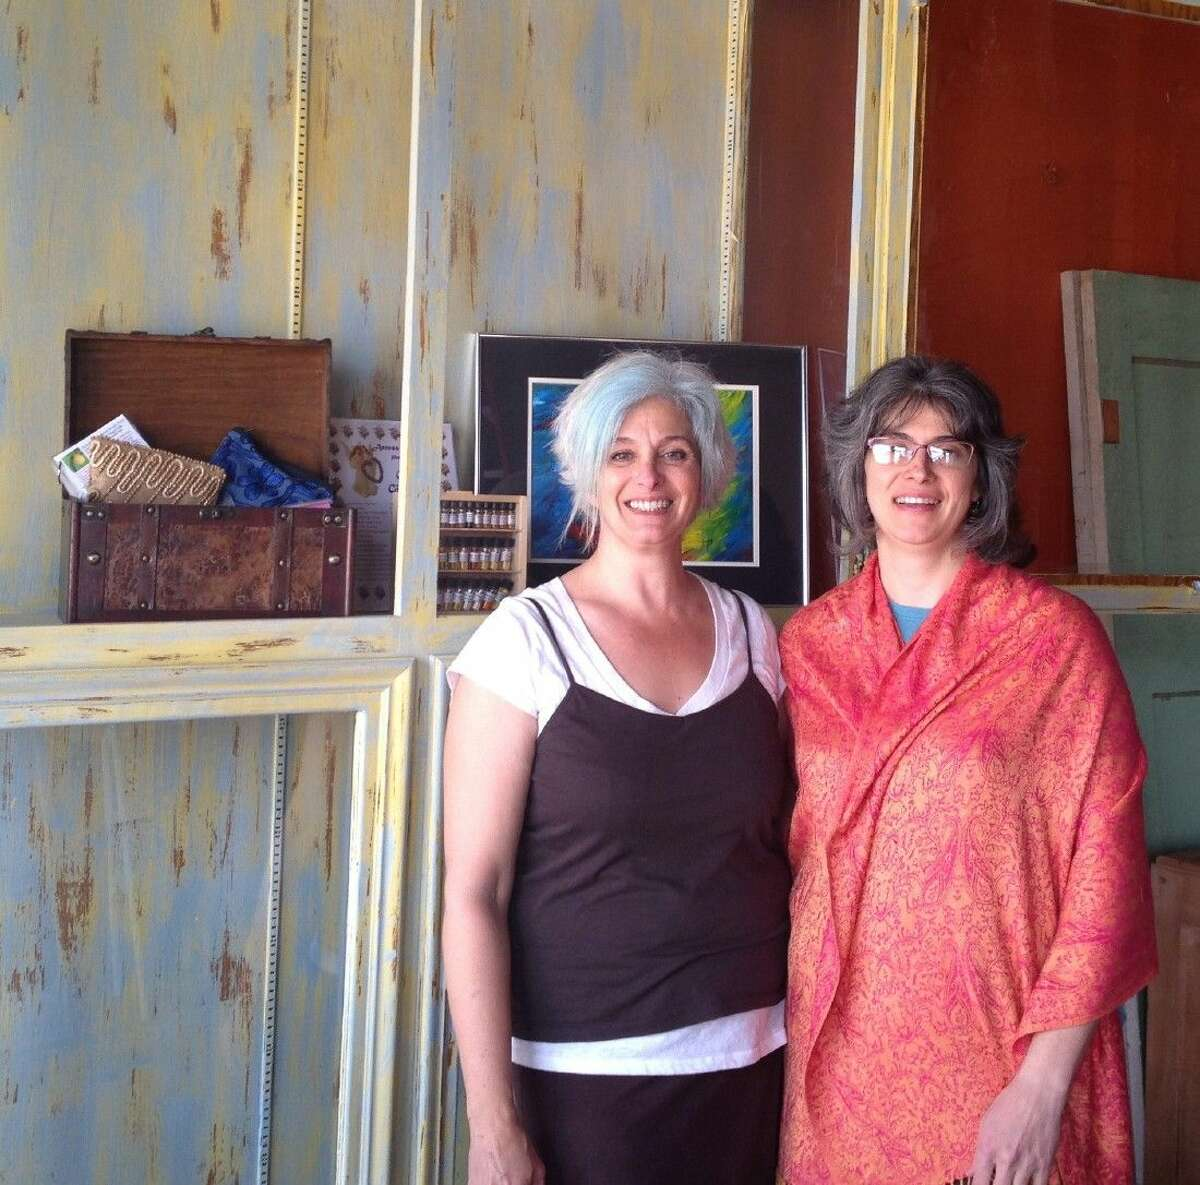 Sisters Dr. Karla Bruning and Vonda Broussard (right) have opened a new art gallery and artist market in Livingston.